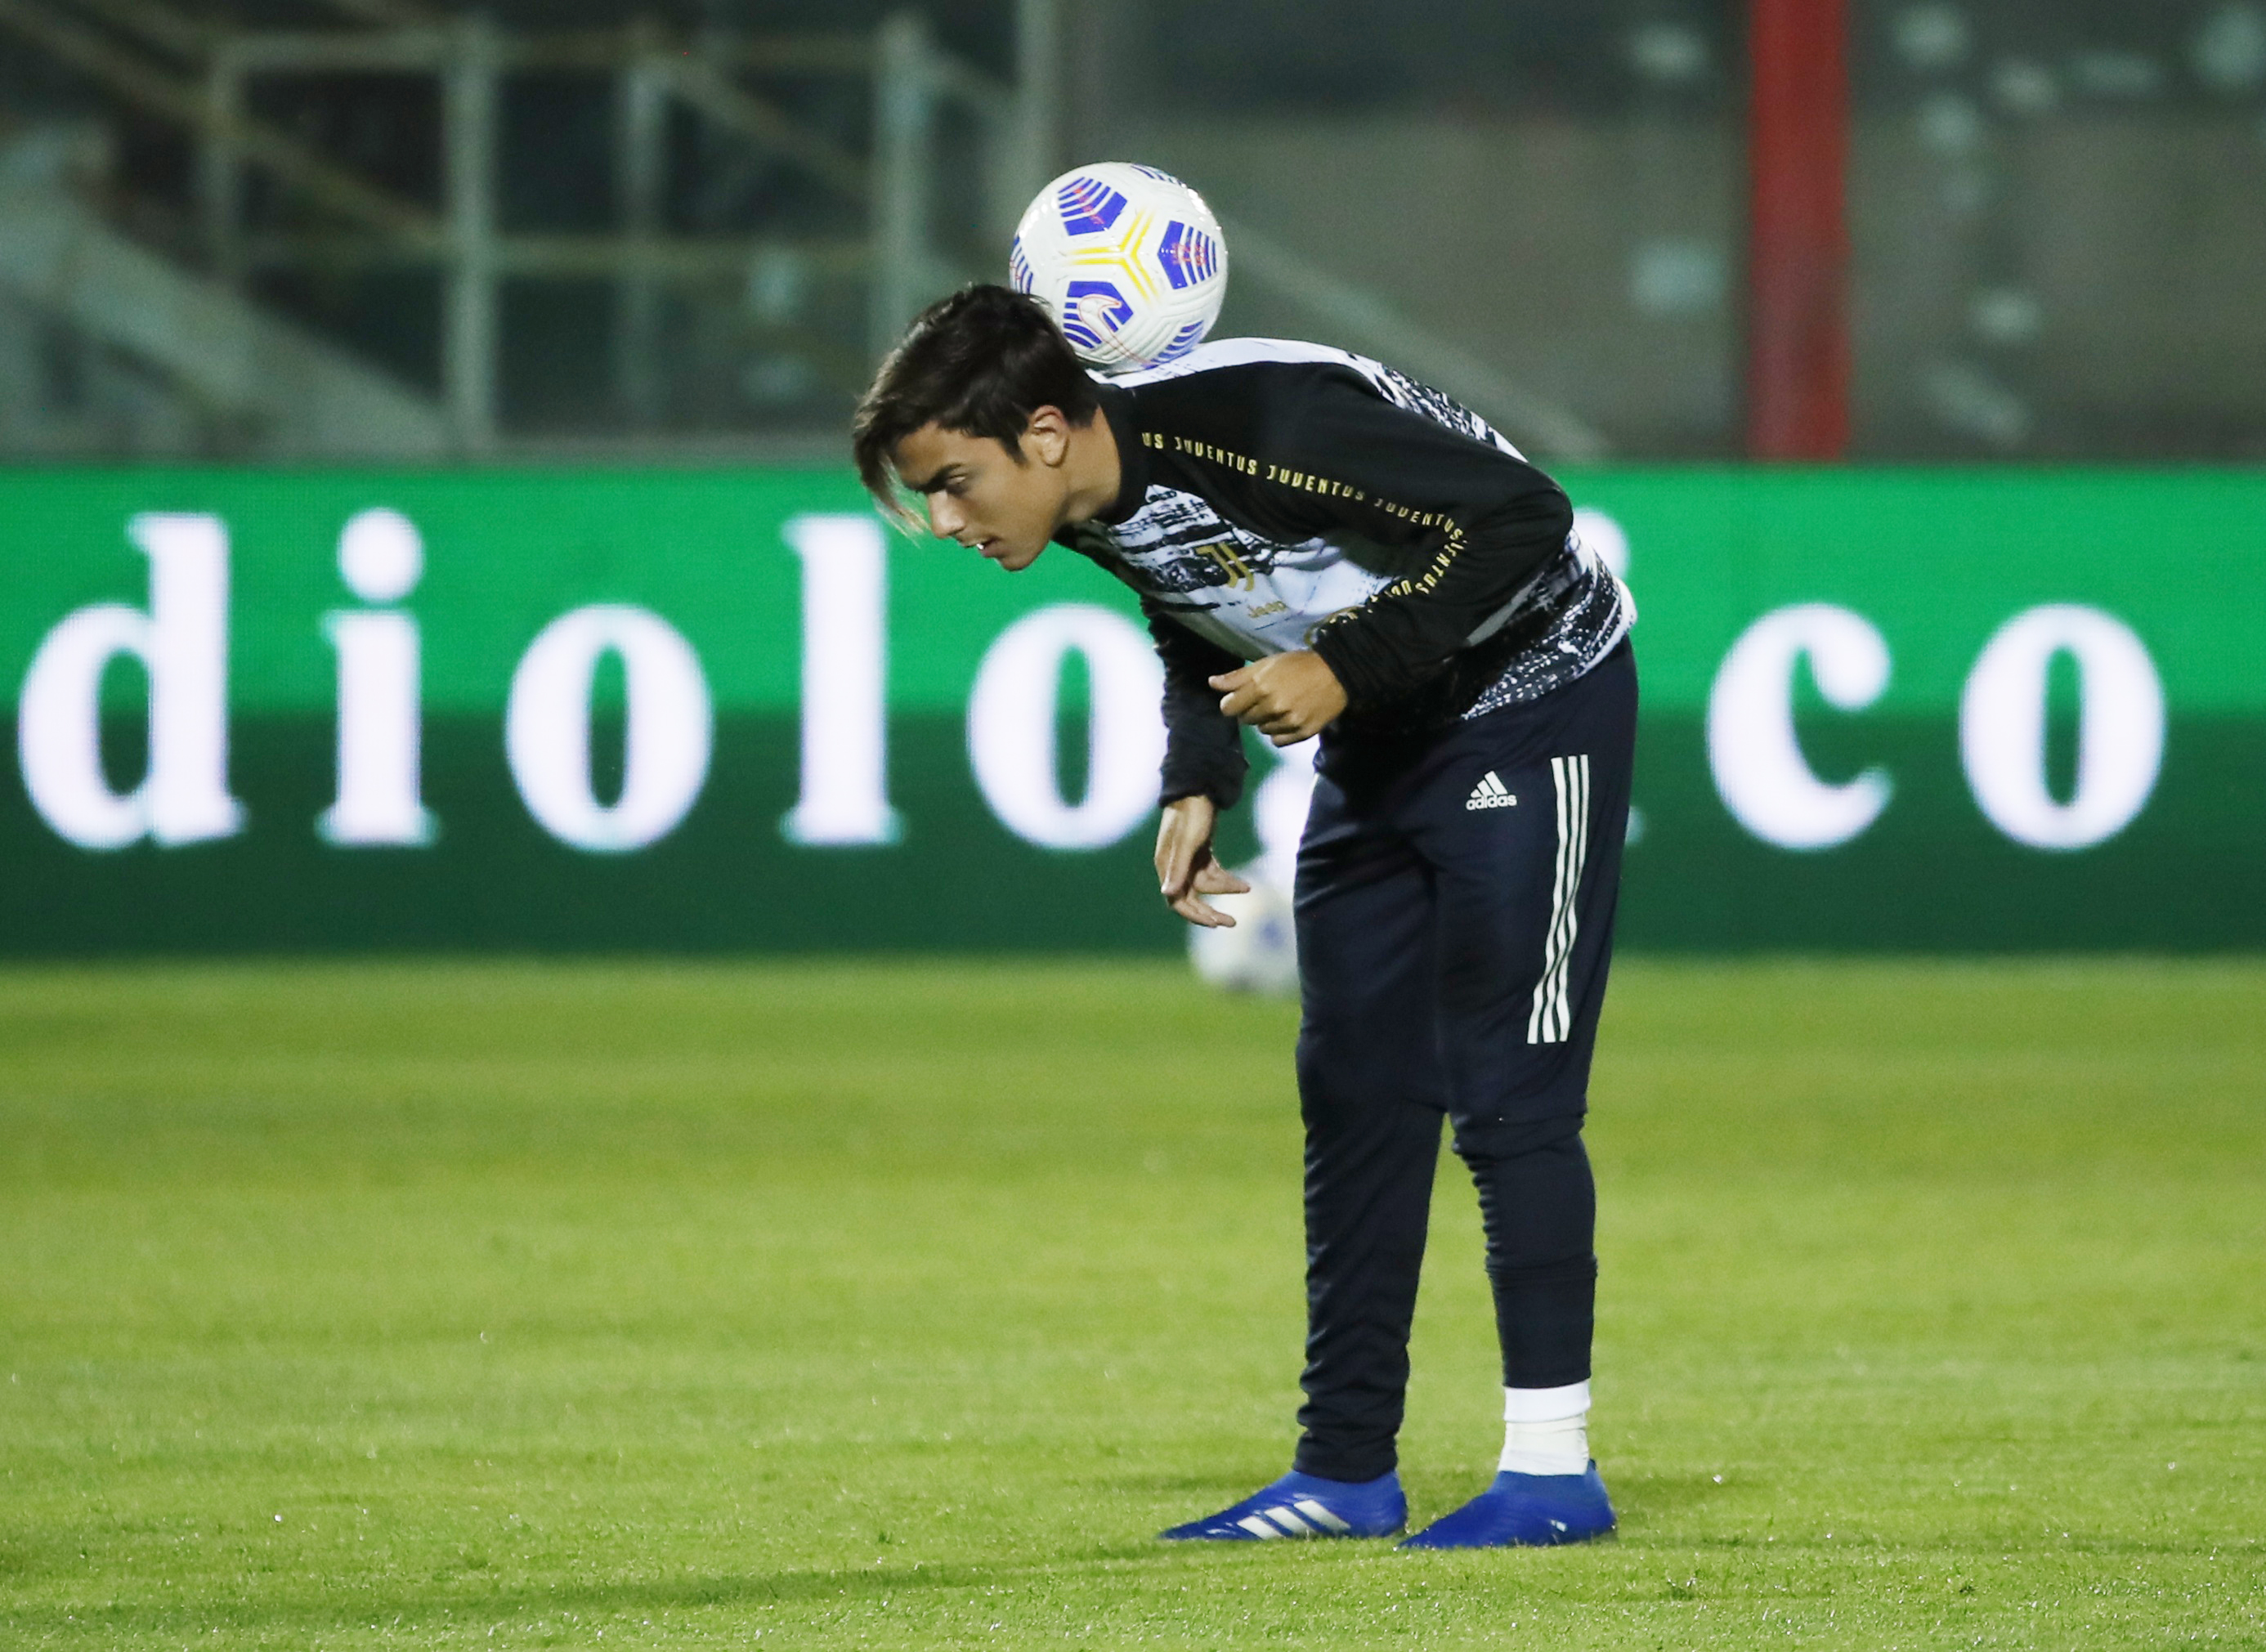 Dybala 'clashes with Juventus chief Paratici in tunnel' after being left on bench again by Pirlo in favour of kids